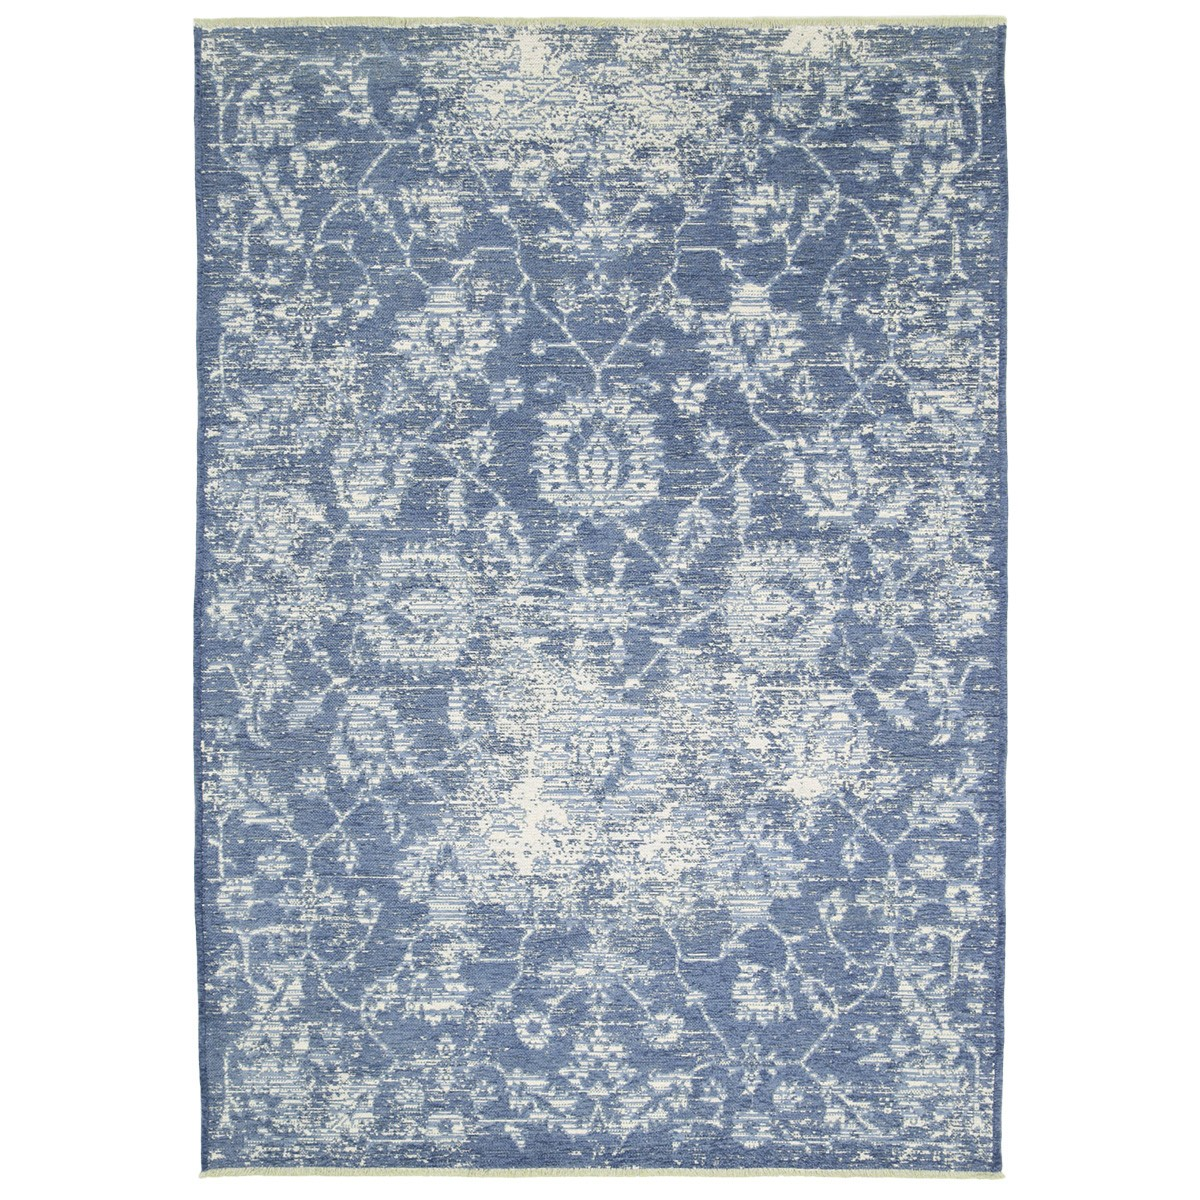 Rusty Vintage Classic Reversible Rug, 120x170cm, Blue